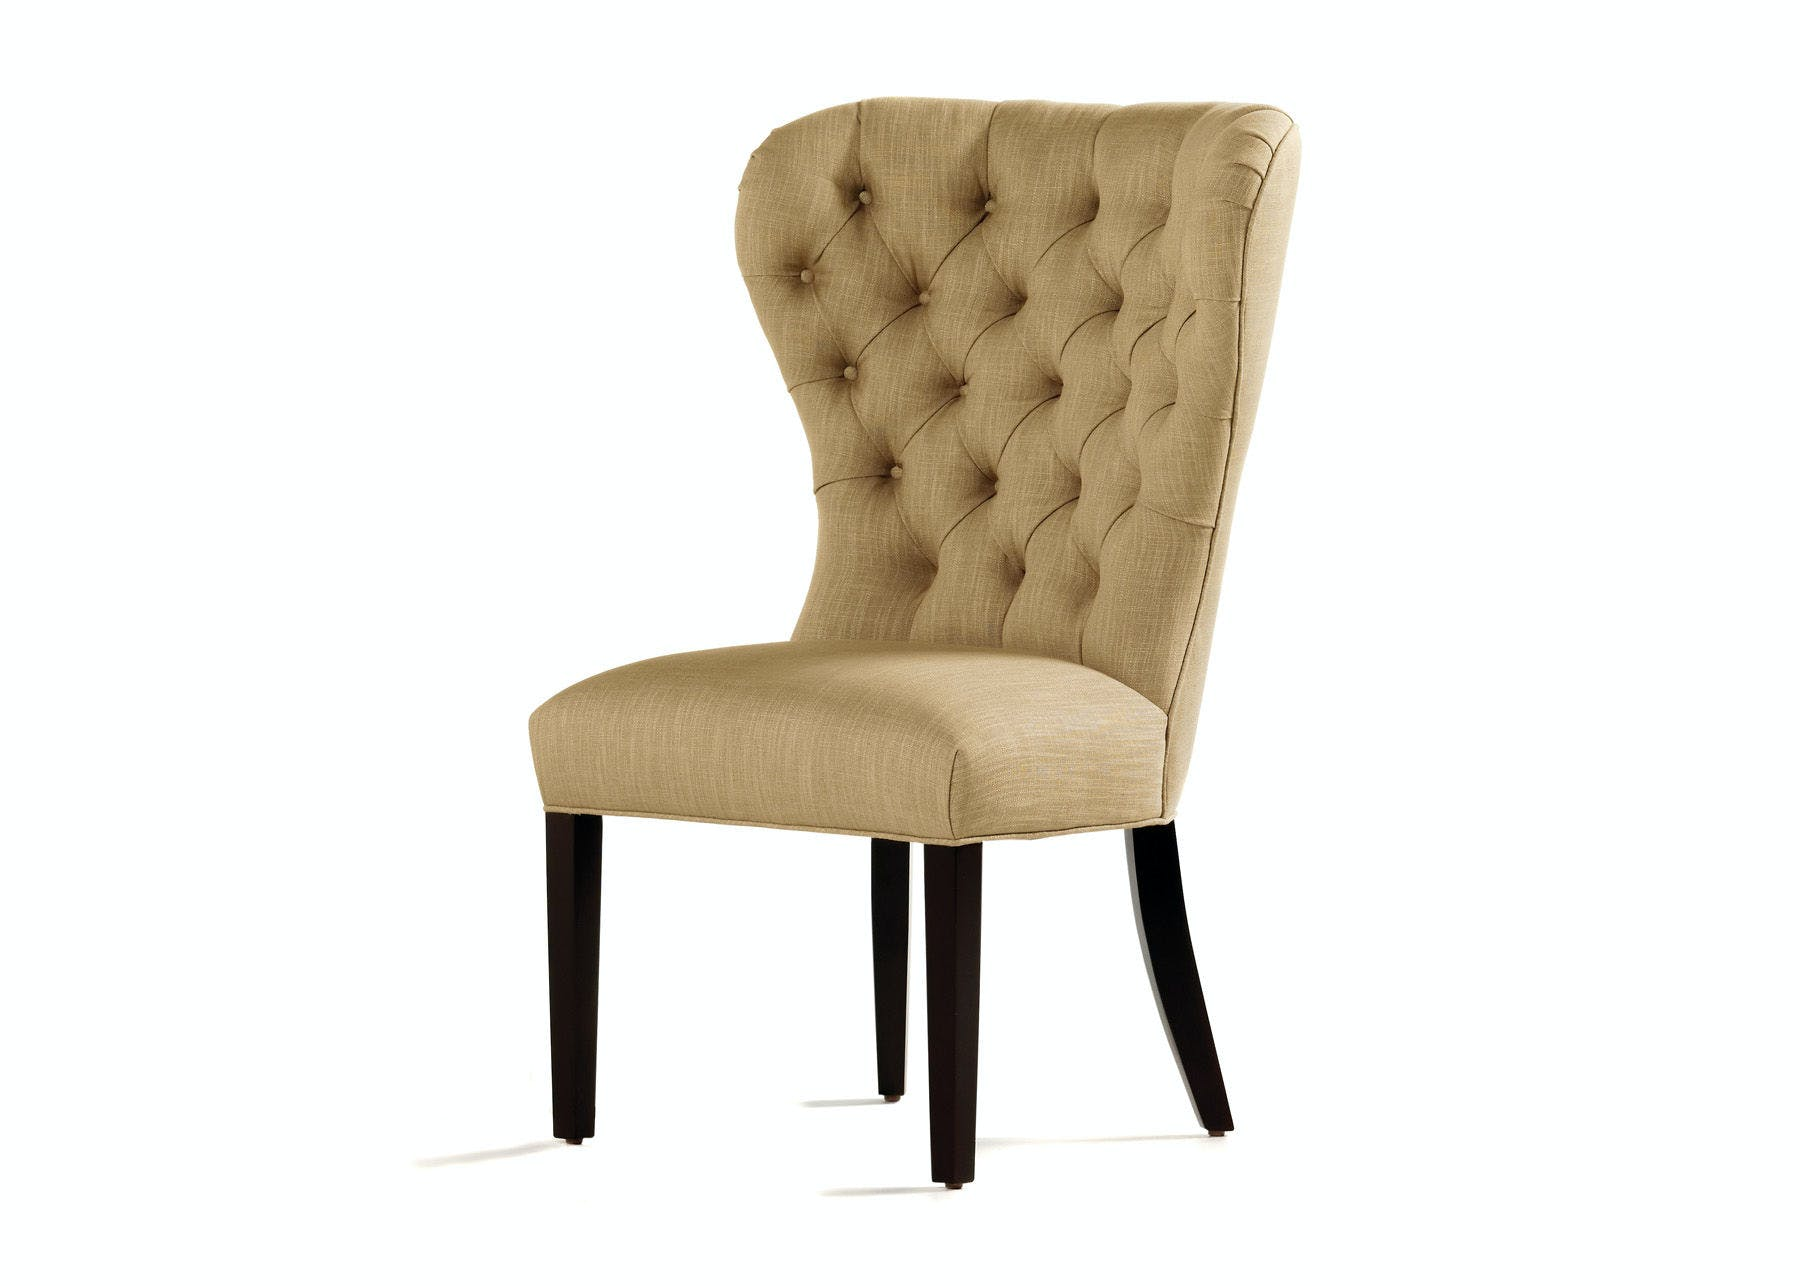 Arbor Home Dining Room Garbo Tufted Dining Chair Arb1917t Walter E Smithe Furniture Design